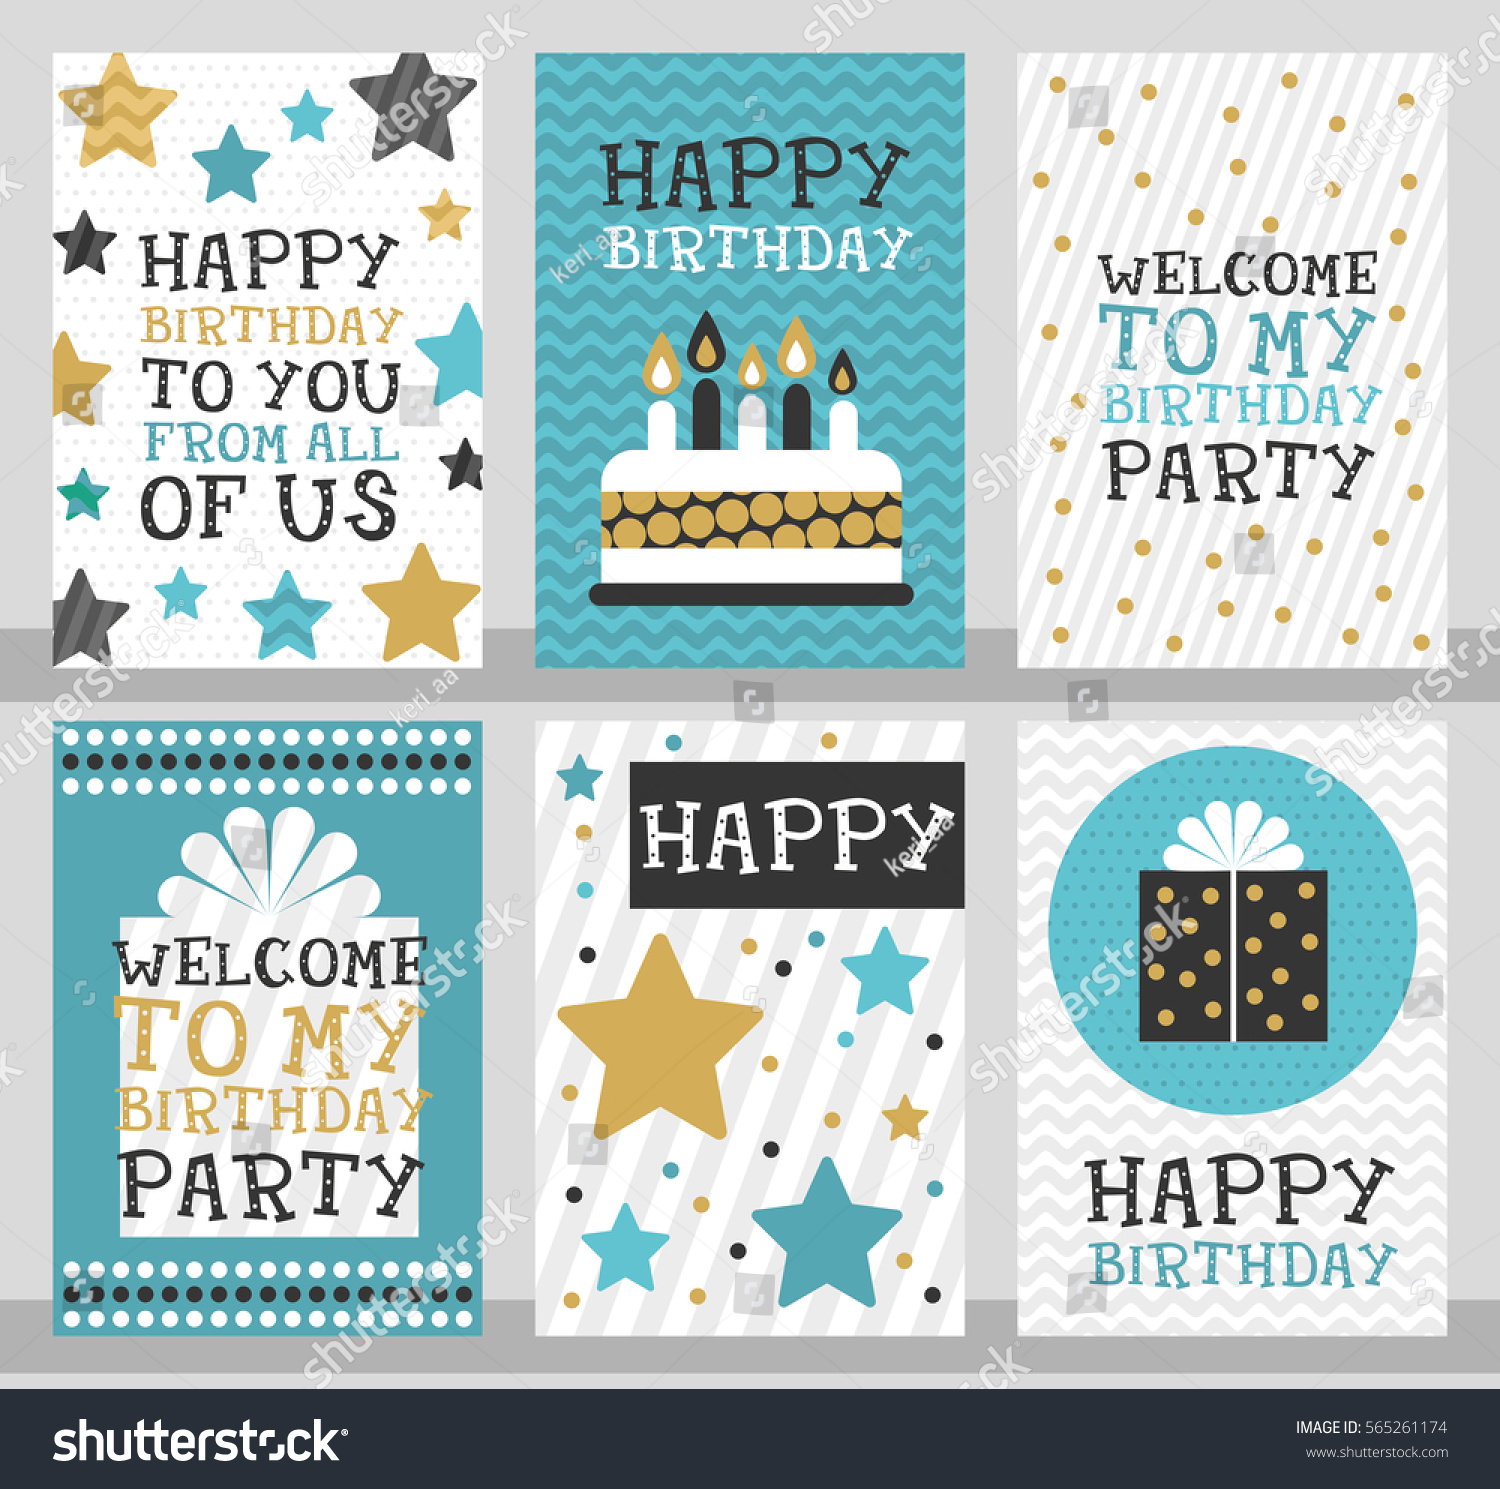 6 Birthday Card Templates: Set 6 Cute Creative Cards Templates Stock Vector 565261174